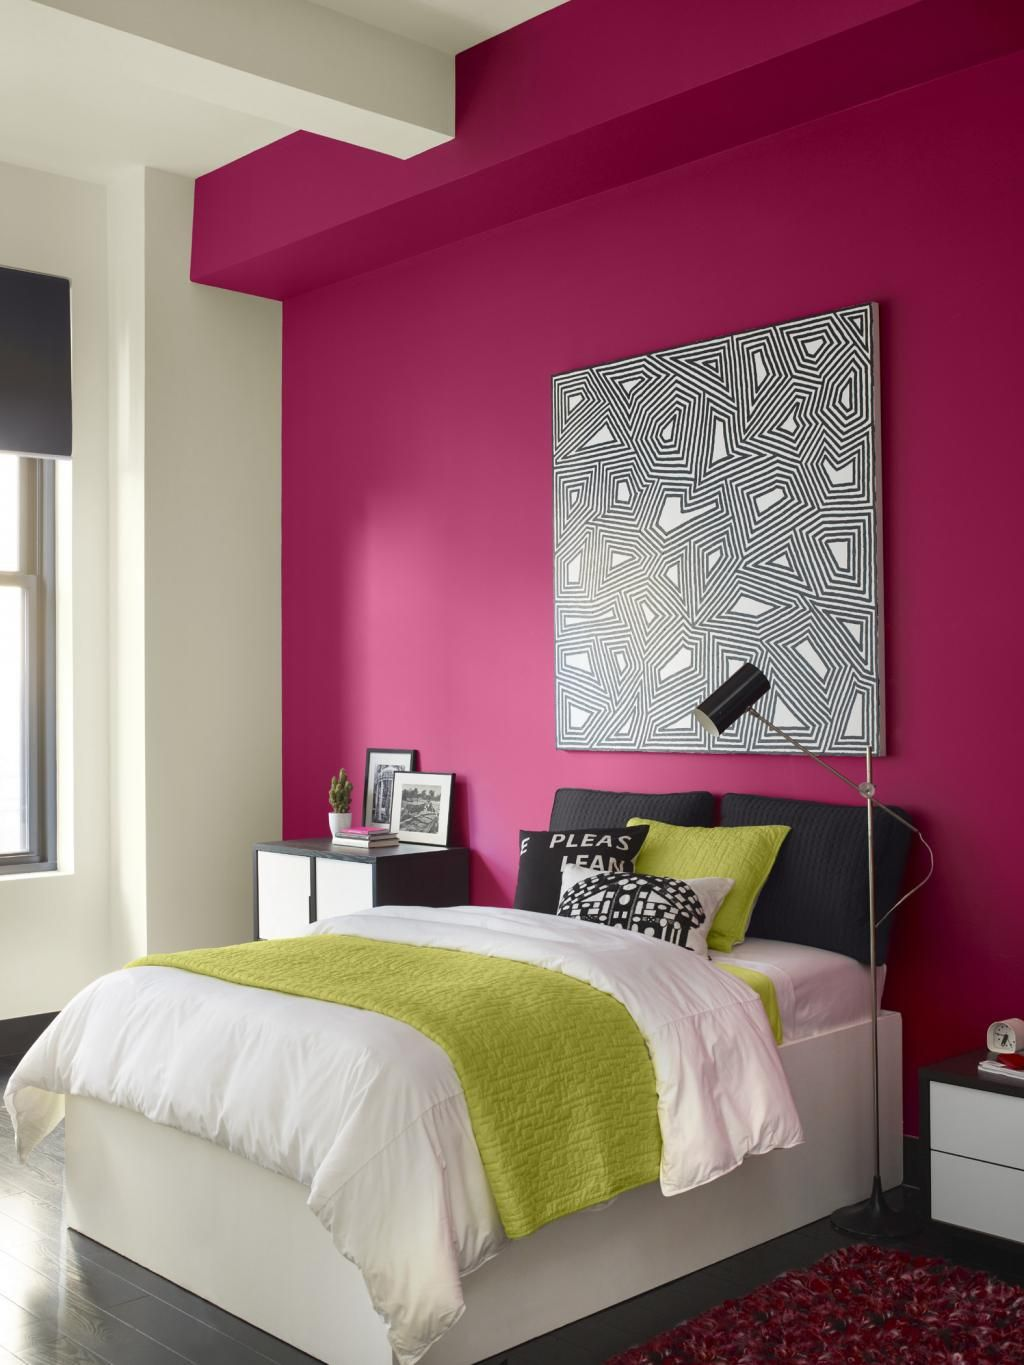 interior design teen bedroom color combination with bright pink white color tapja bright sunset coloured bedroom - Color Bedroom Design